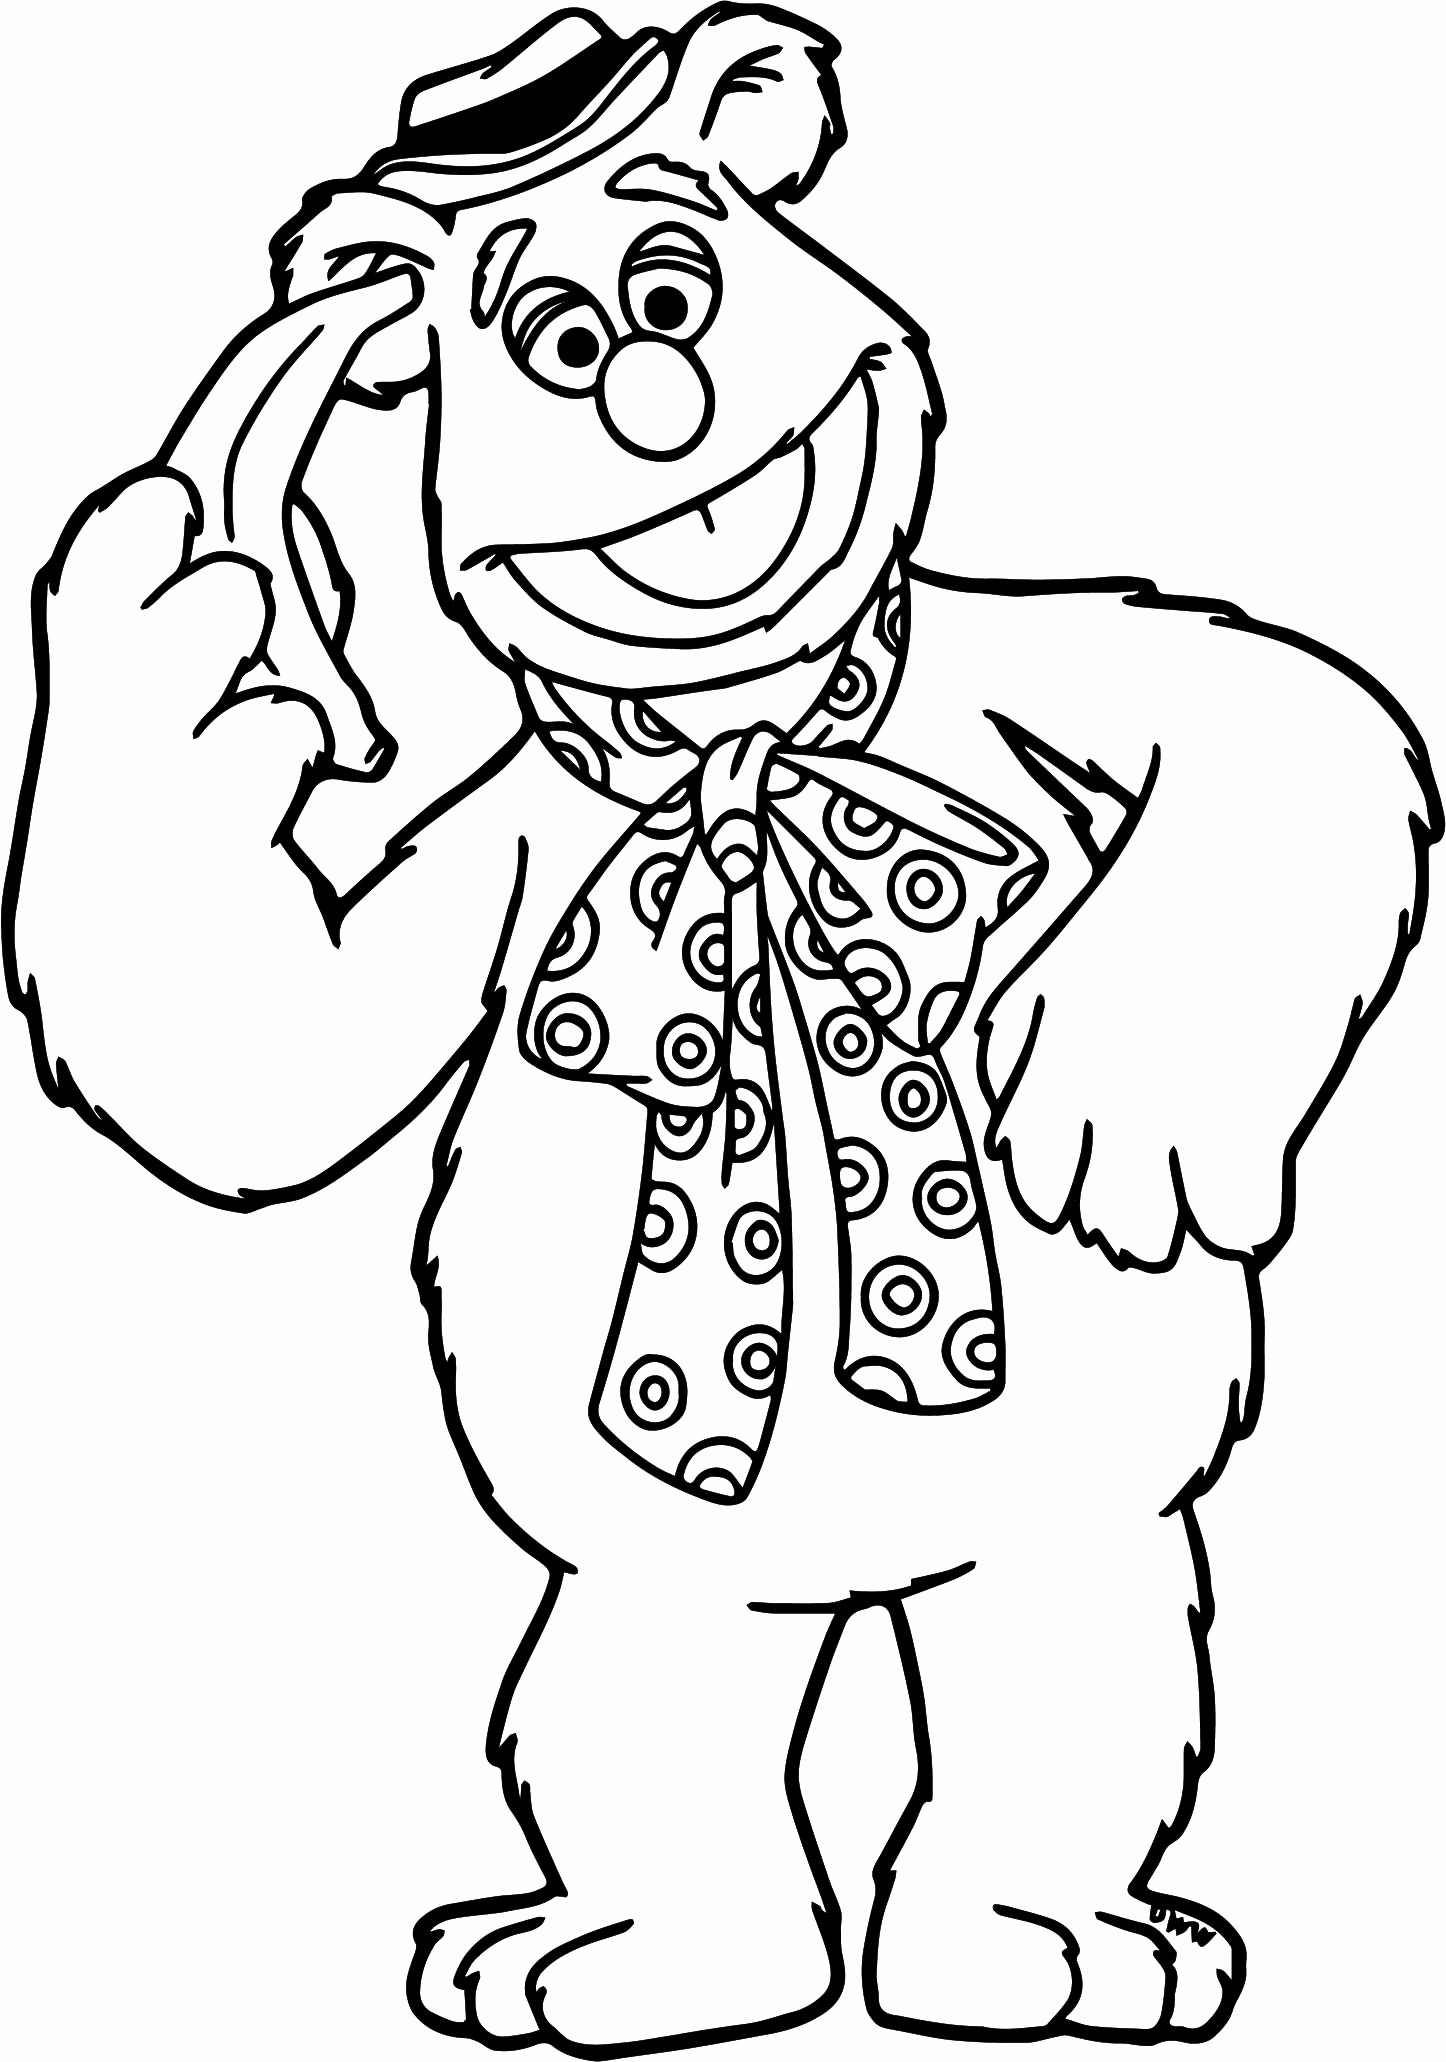 1446x2062 Coloring Book Pages For Kids Beautiful The Muppets Beaker Fear